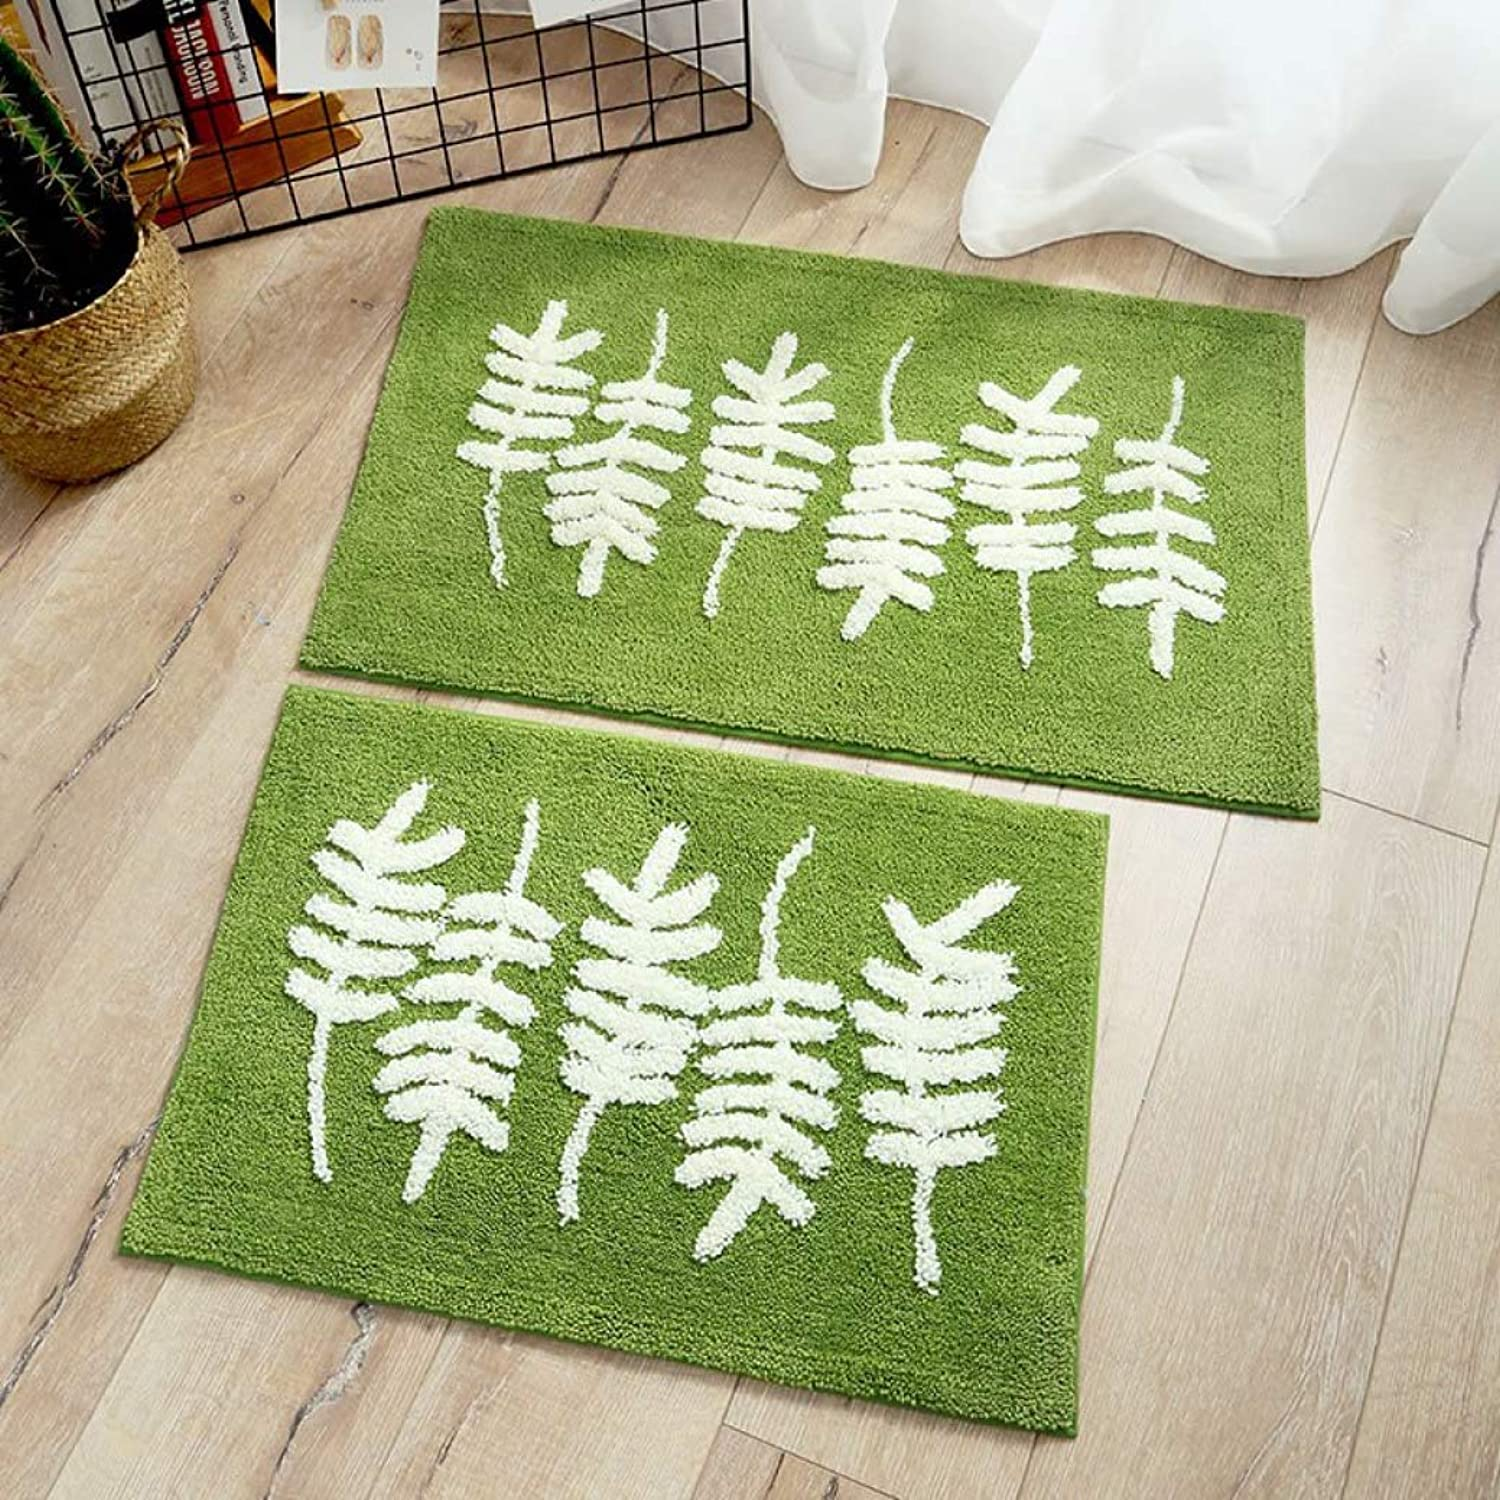 Thickened Flocking Green Bathroom Carpet Door Mat Toilet Non-Slip Bedside Rugs.